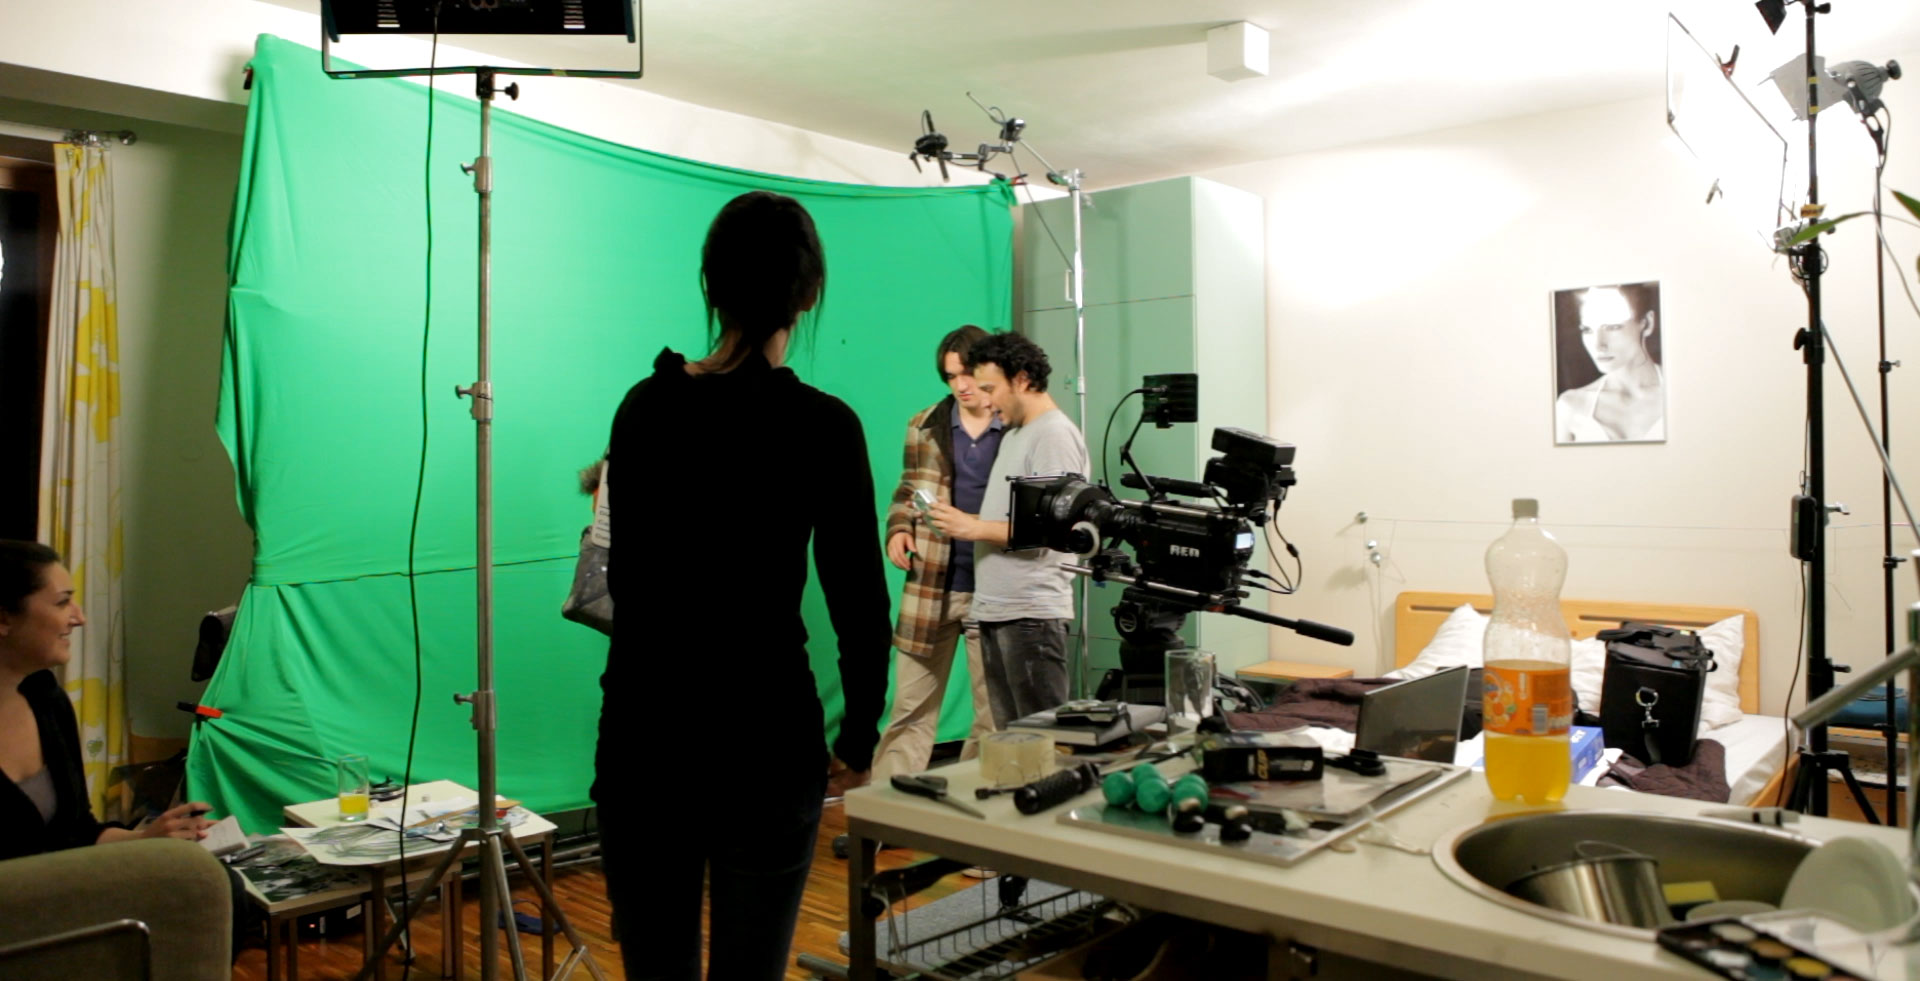 Filming on green screen with the Red Camera